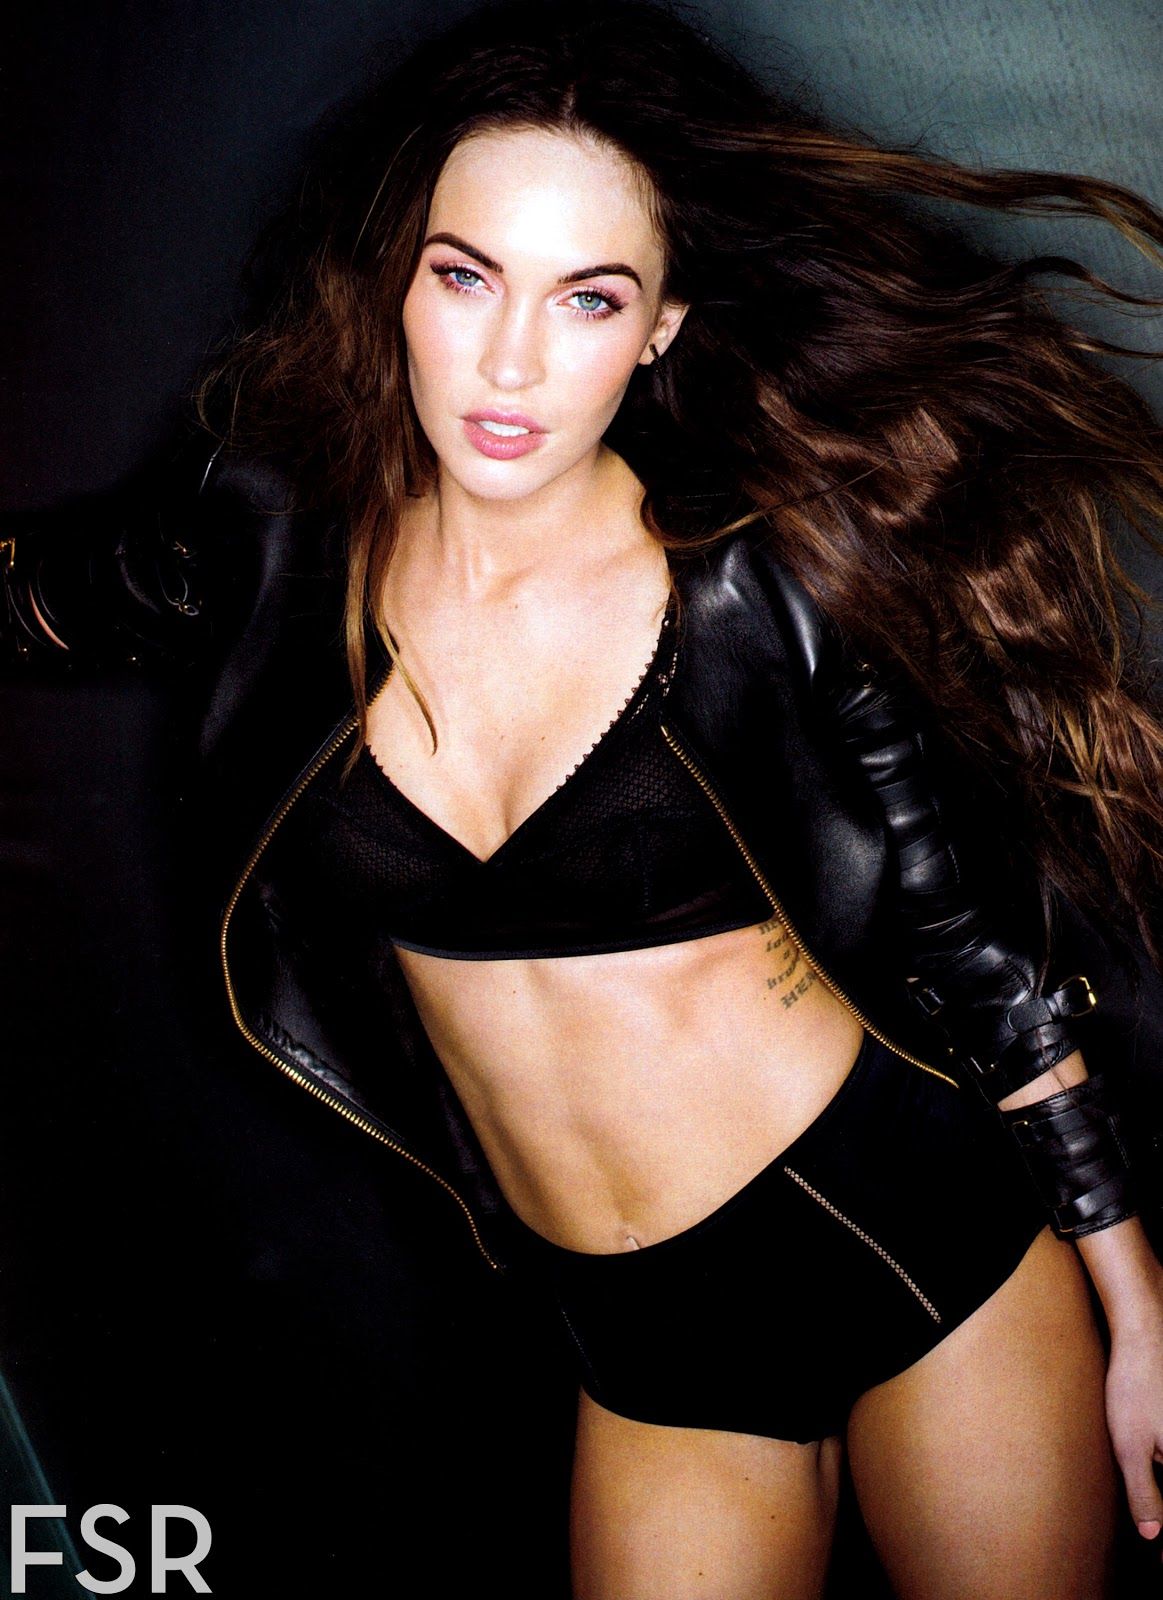 http://1.bp.blogspot.com/-PvsAg1xJ8qg/UPa_r6ICe3I/AAAAAAAC9Vg/XA5vuTO9IUo/s1600/fashion_scans_remastered-megan_fox-esquire_usa-february_2013-scanned_by_vampirehorde-hq-4.jpg